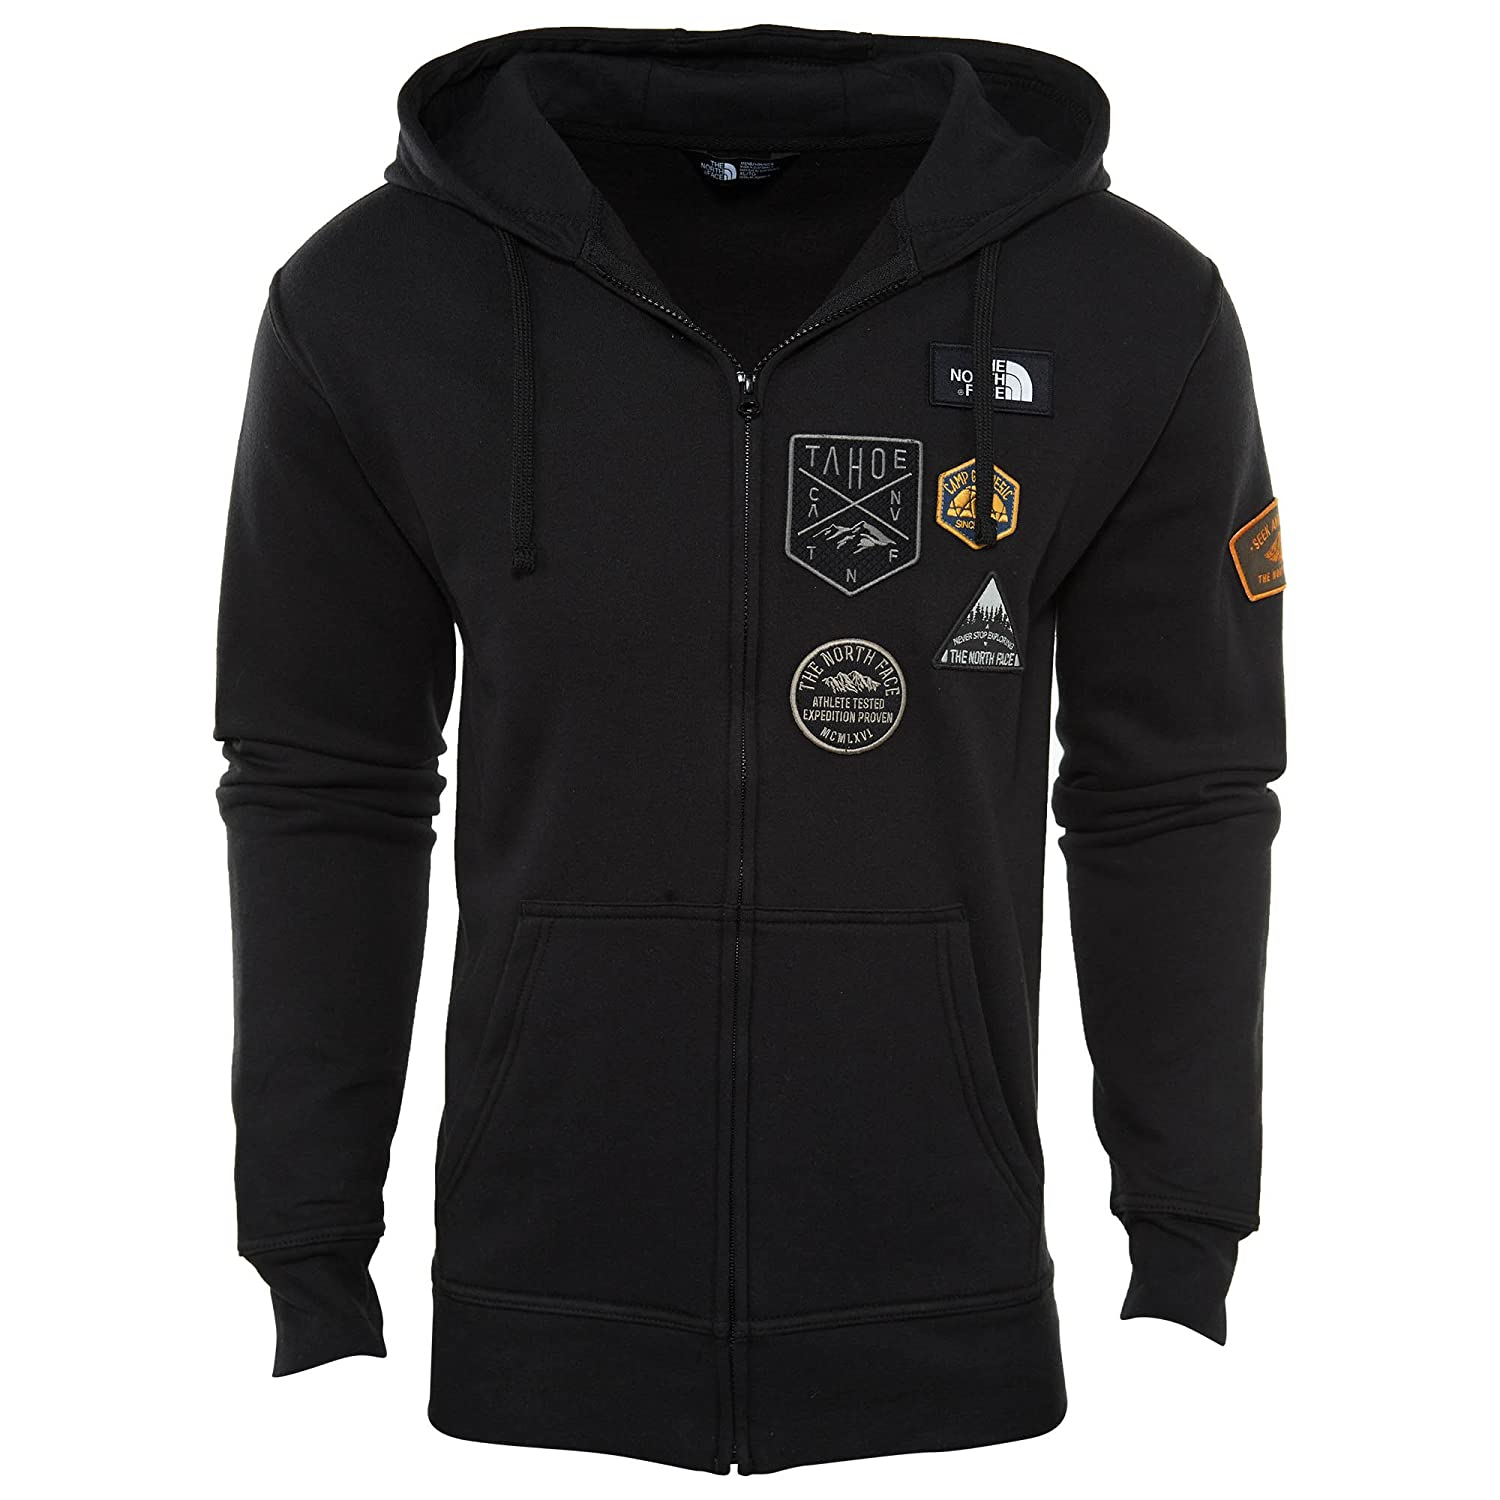 3acaf5991 The North Face Mens Patches Hoodie Sweatshirt Tnfblack Xl: Amazon.ca ...